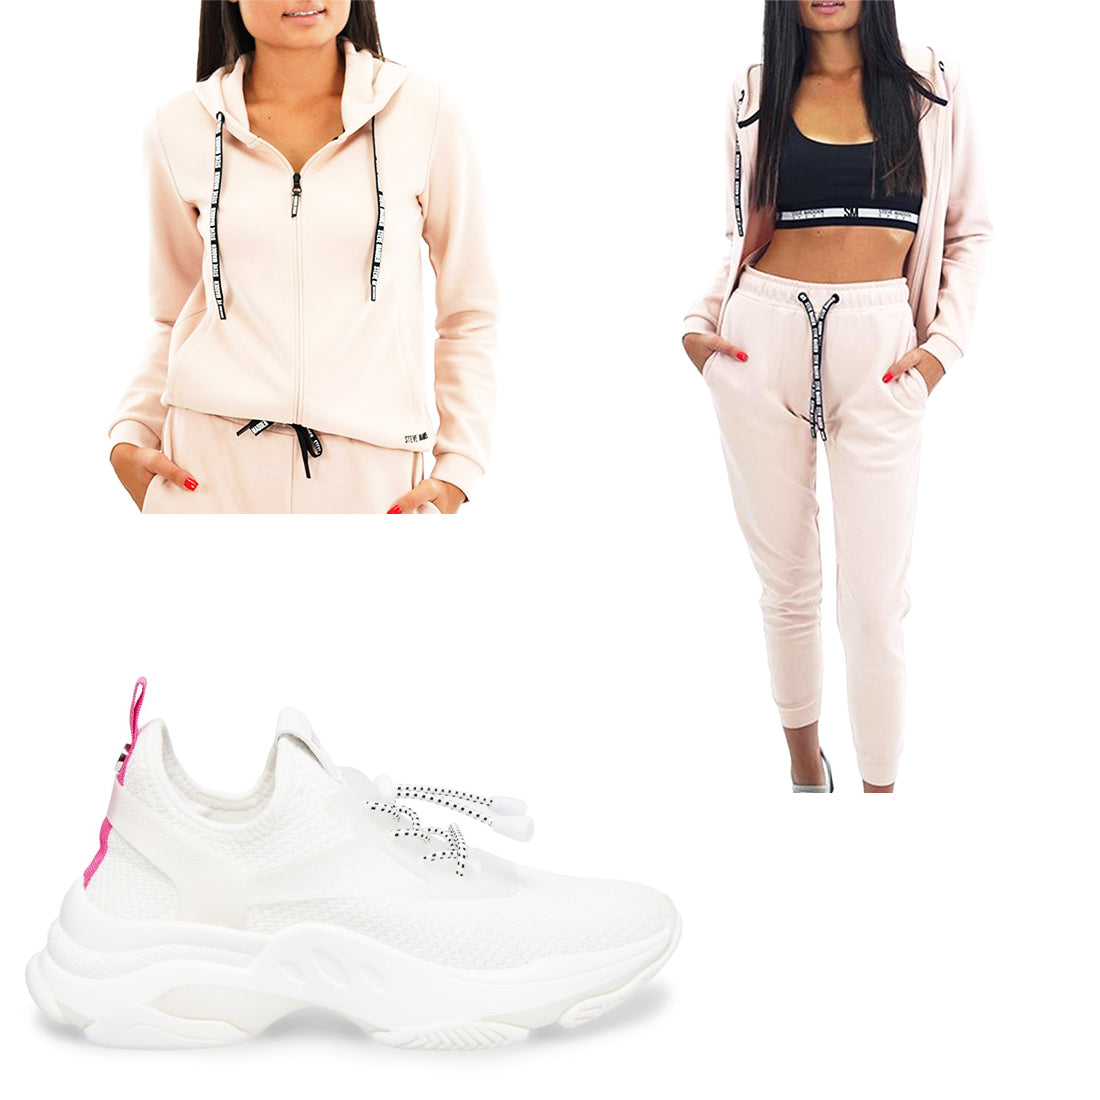 ACTIVE JOGGERS PINK + ZIP-UP ACTIVE SWEATSHIRT PINK + MYLES WHITE